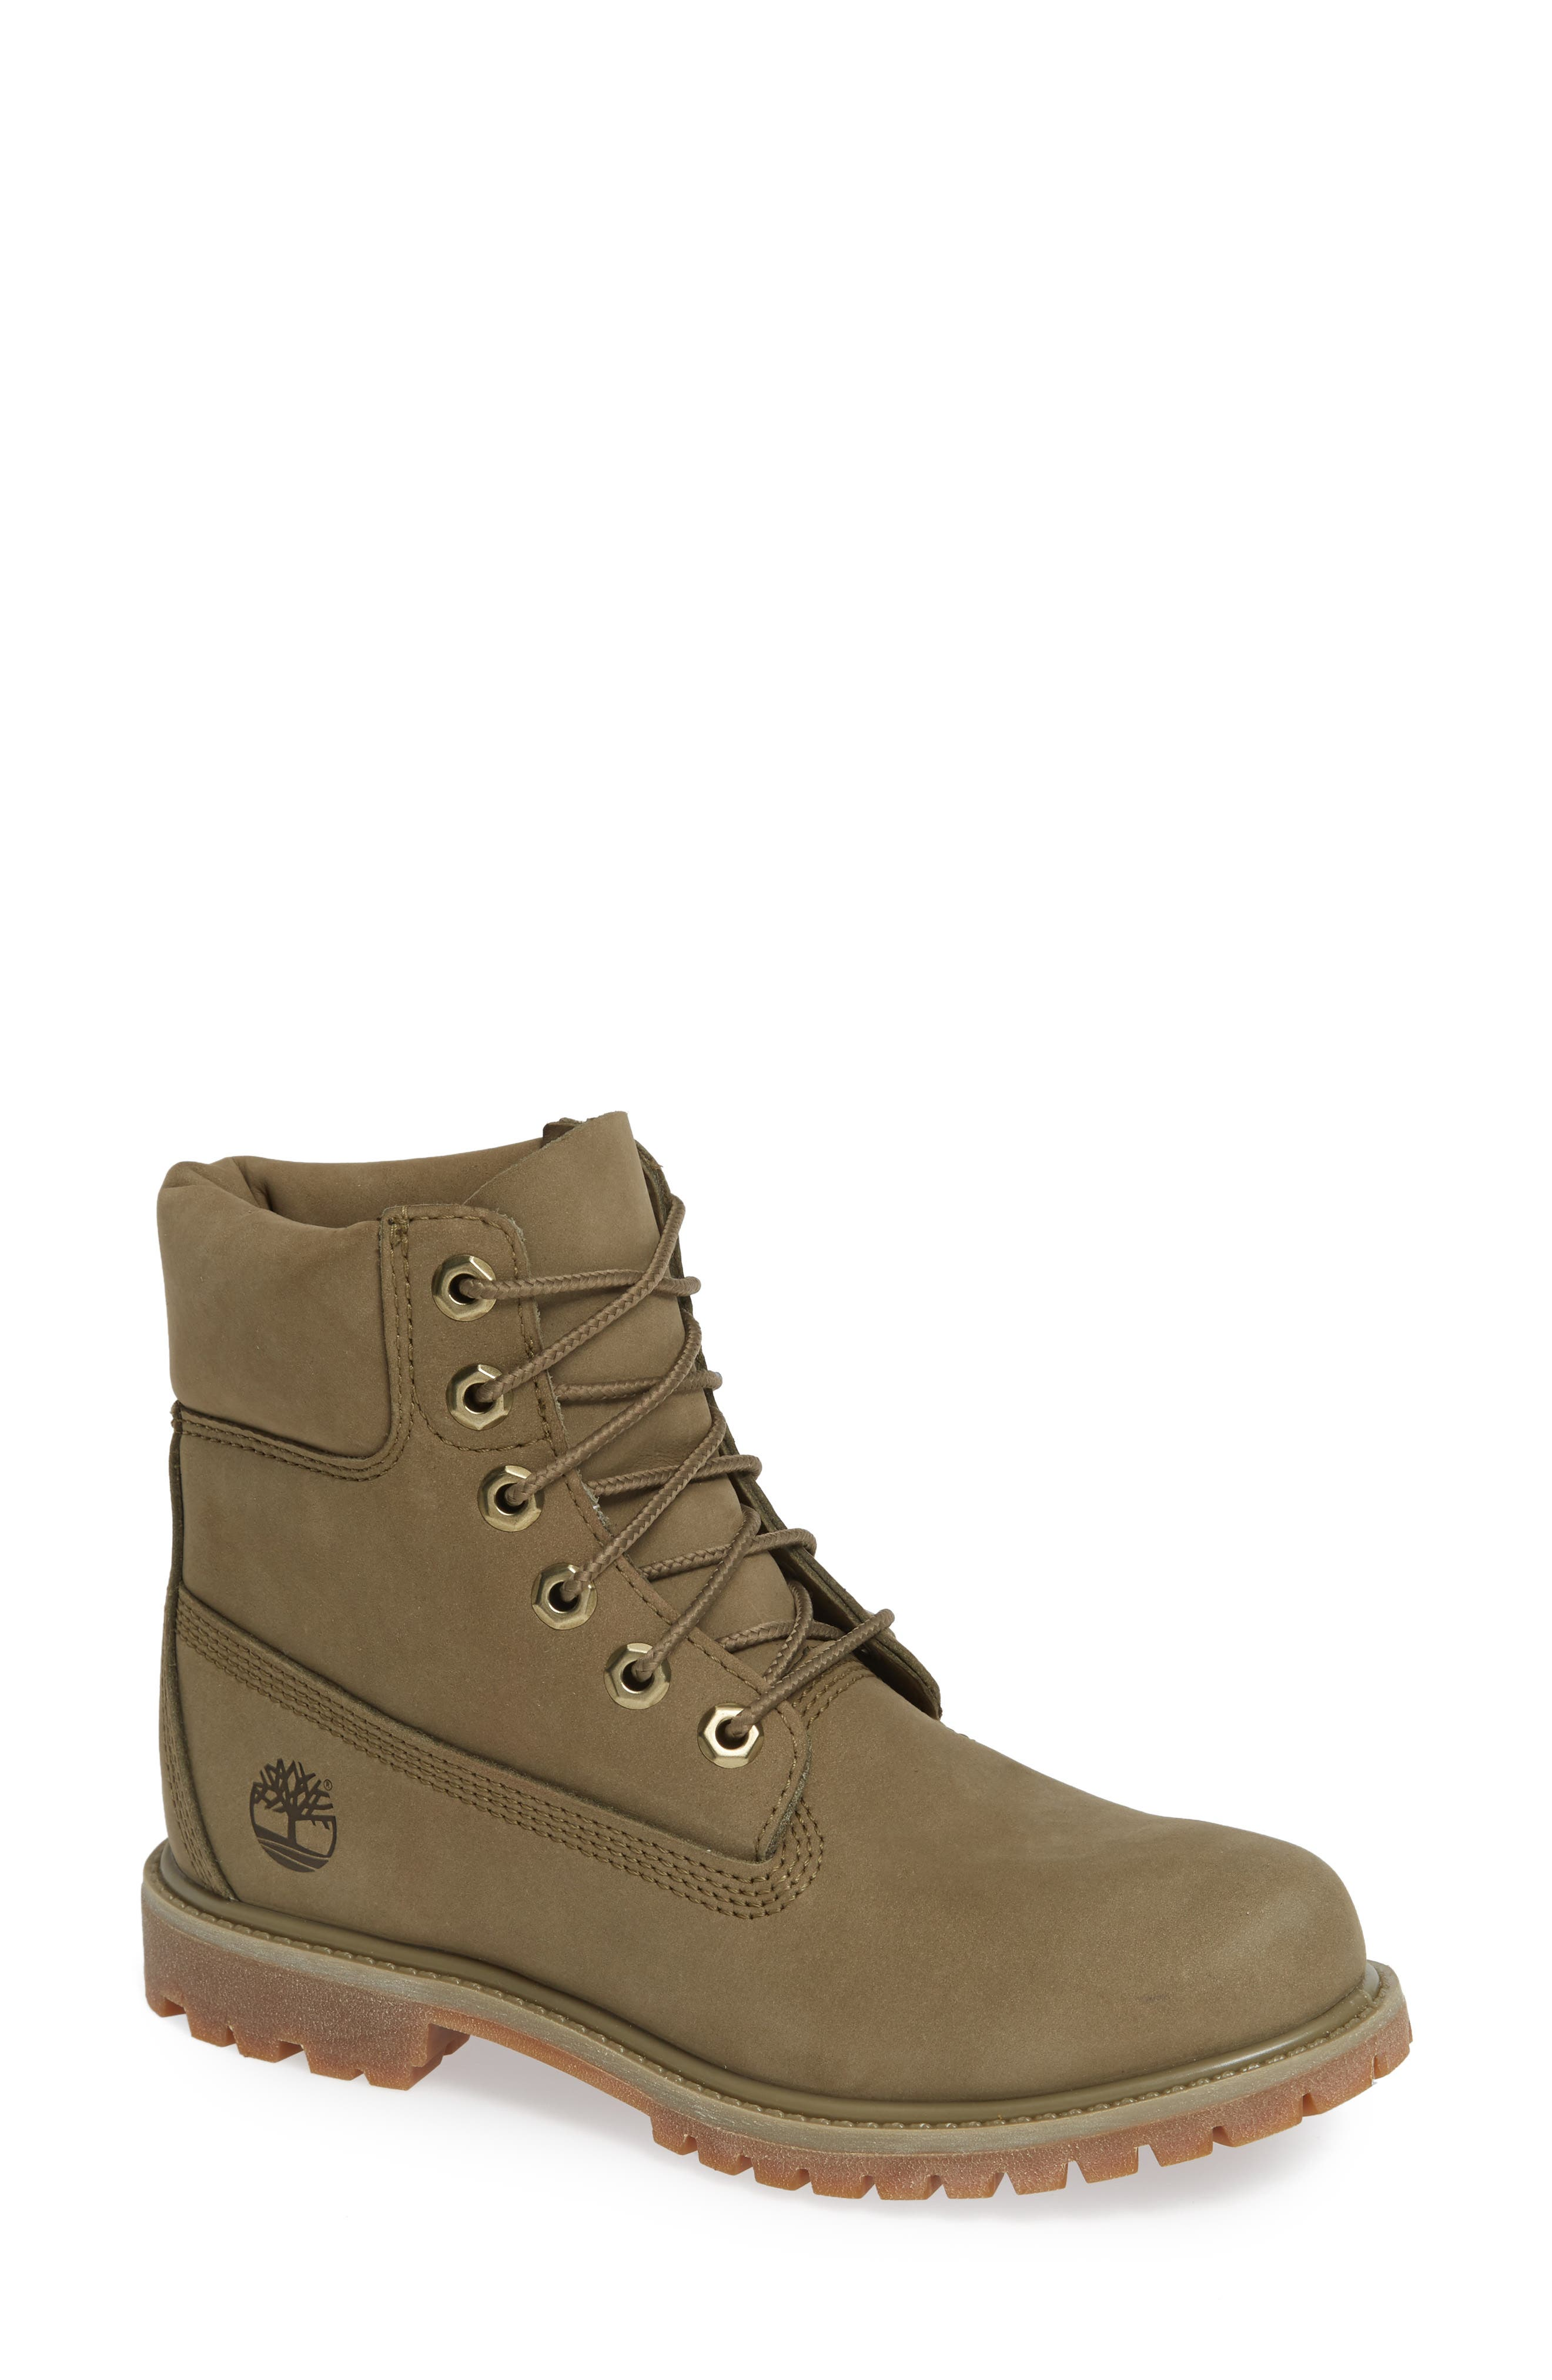 Timberland 6 Inch Premium Waterproof Boot, Green